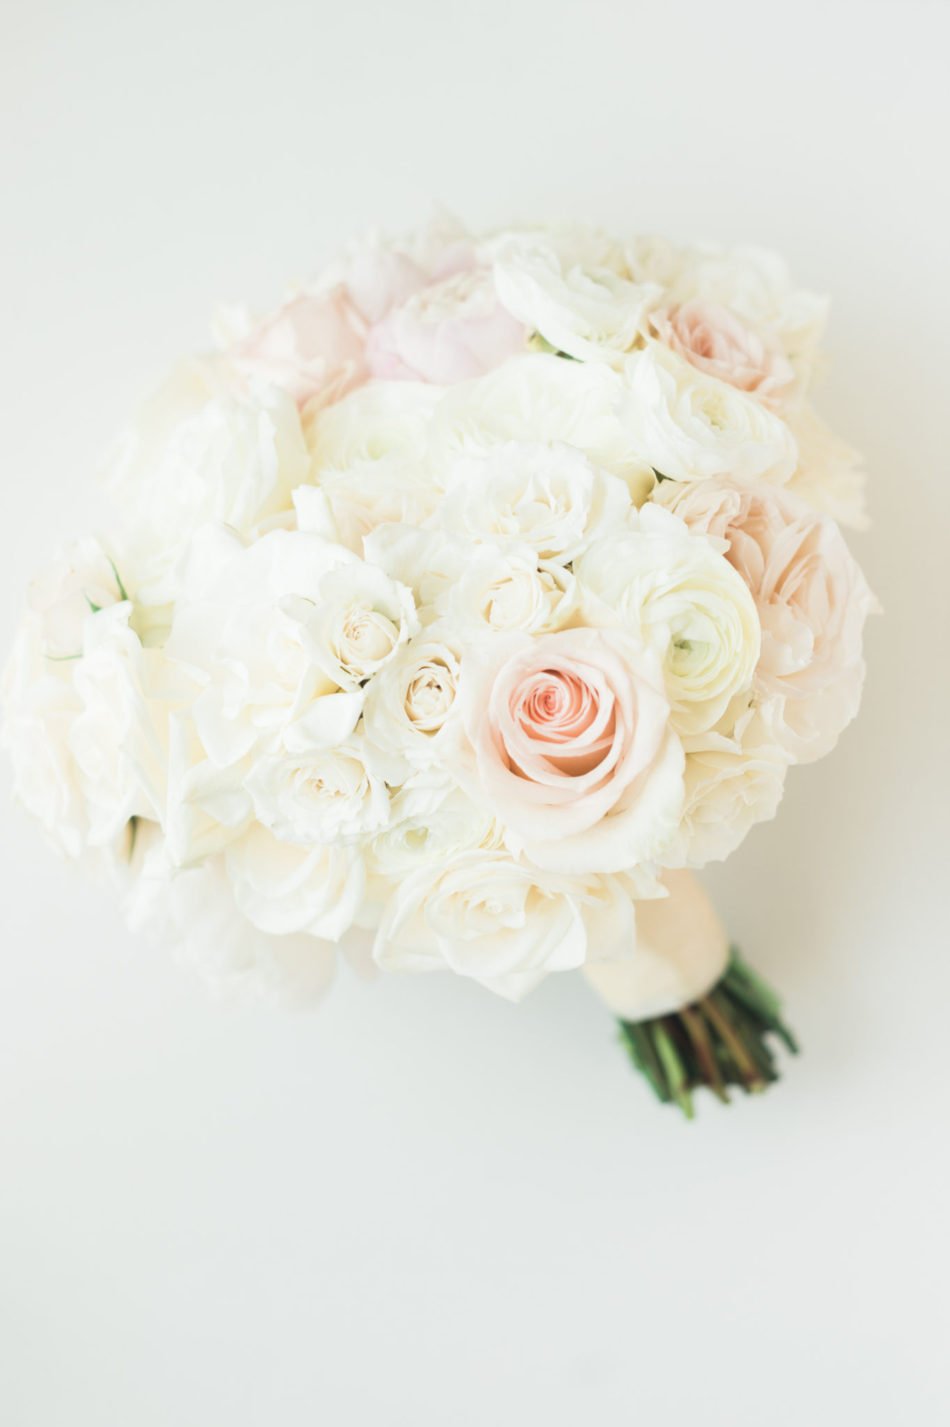 blush bridal bouquet, romantic bridal bouquet, romantic all-white wedding, floral design, florist, wedding florist, wedding flowers, orange county weddings, orange county wedding florist, orange county florist, orange county floral design, flowers by cina